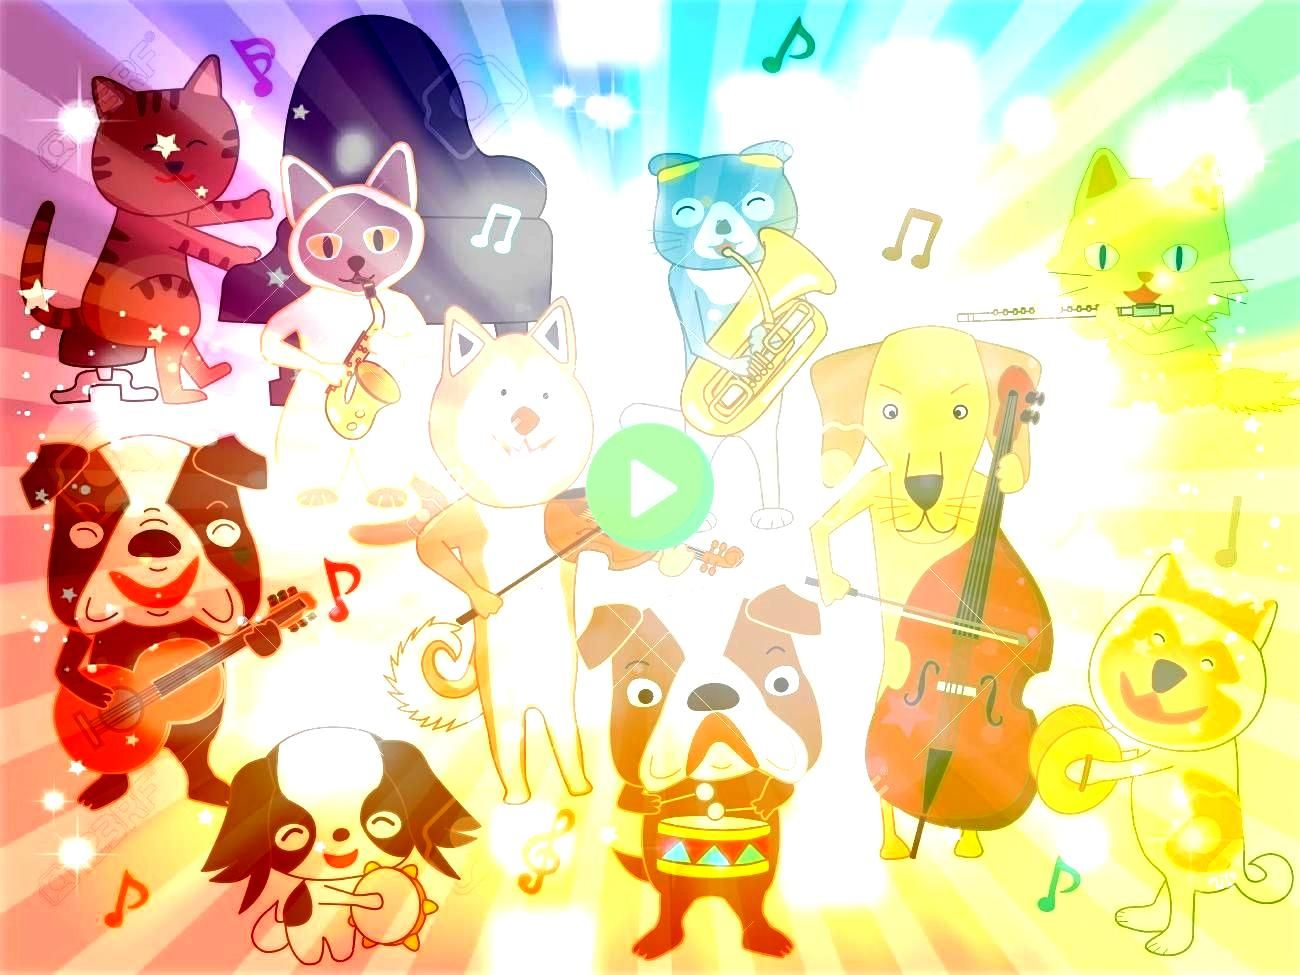 for dogs and cats Dogs and cats are playing instruments Illustration The concert for dogs and cats Dogs and cats are playing instruments Illustration  Learn to manipulate...